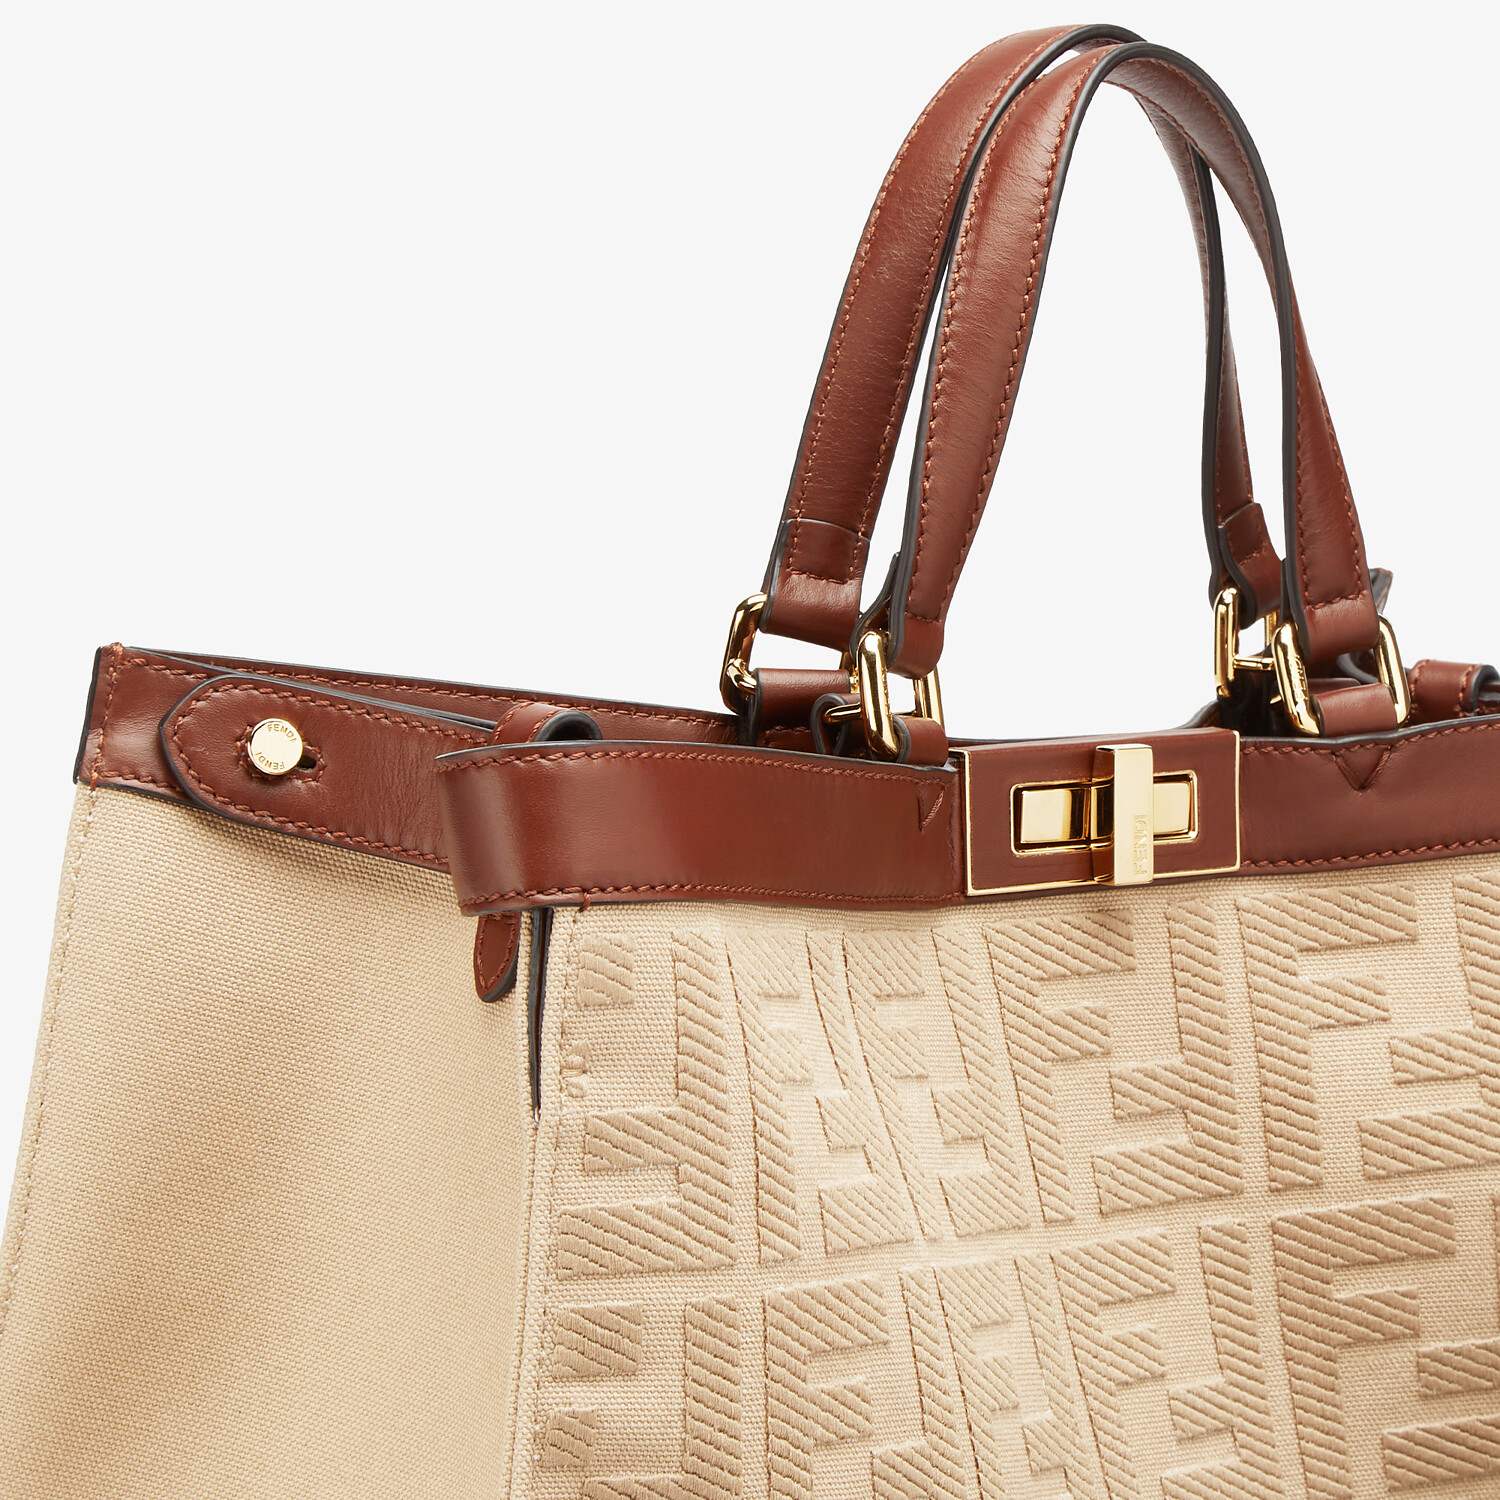 FENDI PEEKABOO X-TOTE - Beige canvas bag - view 6 detail